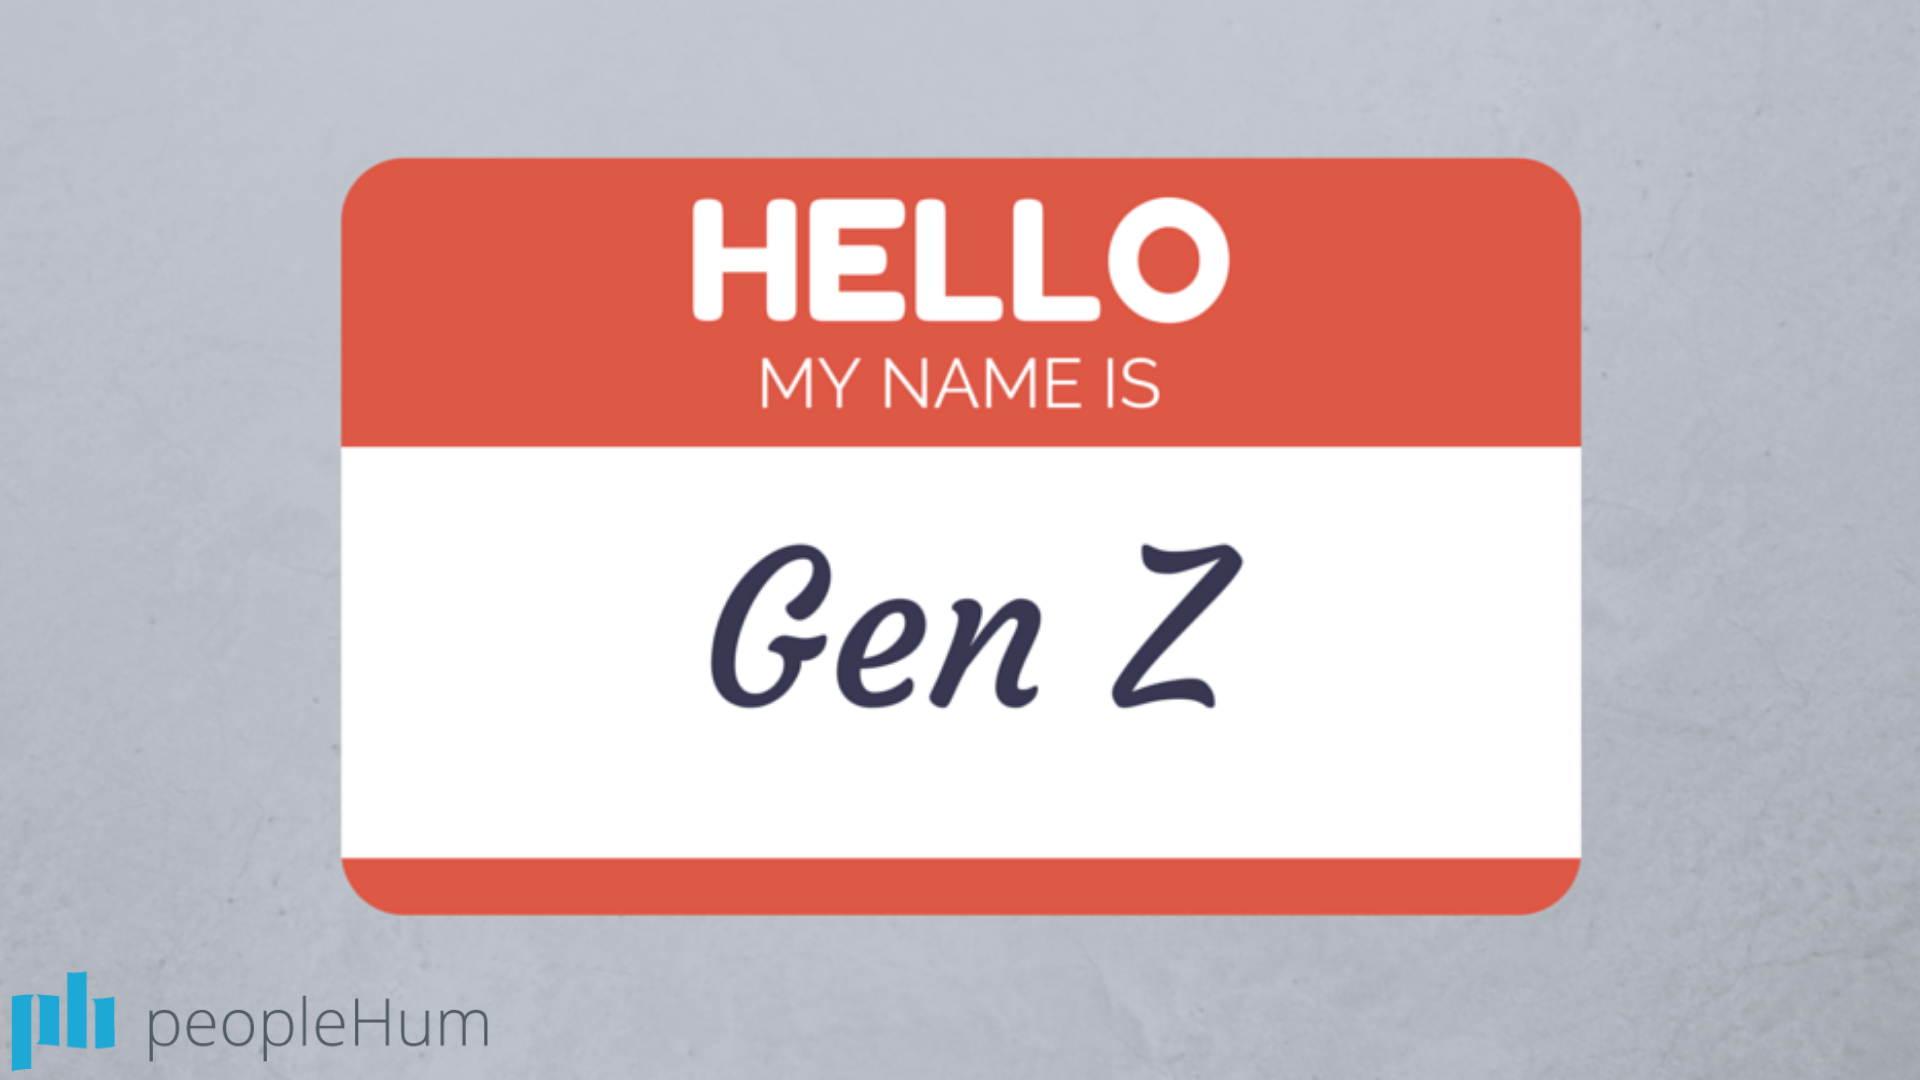 Tips to keep in mind while hiring Gen Z